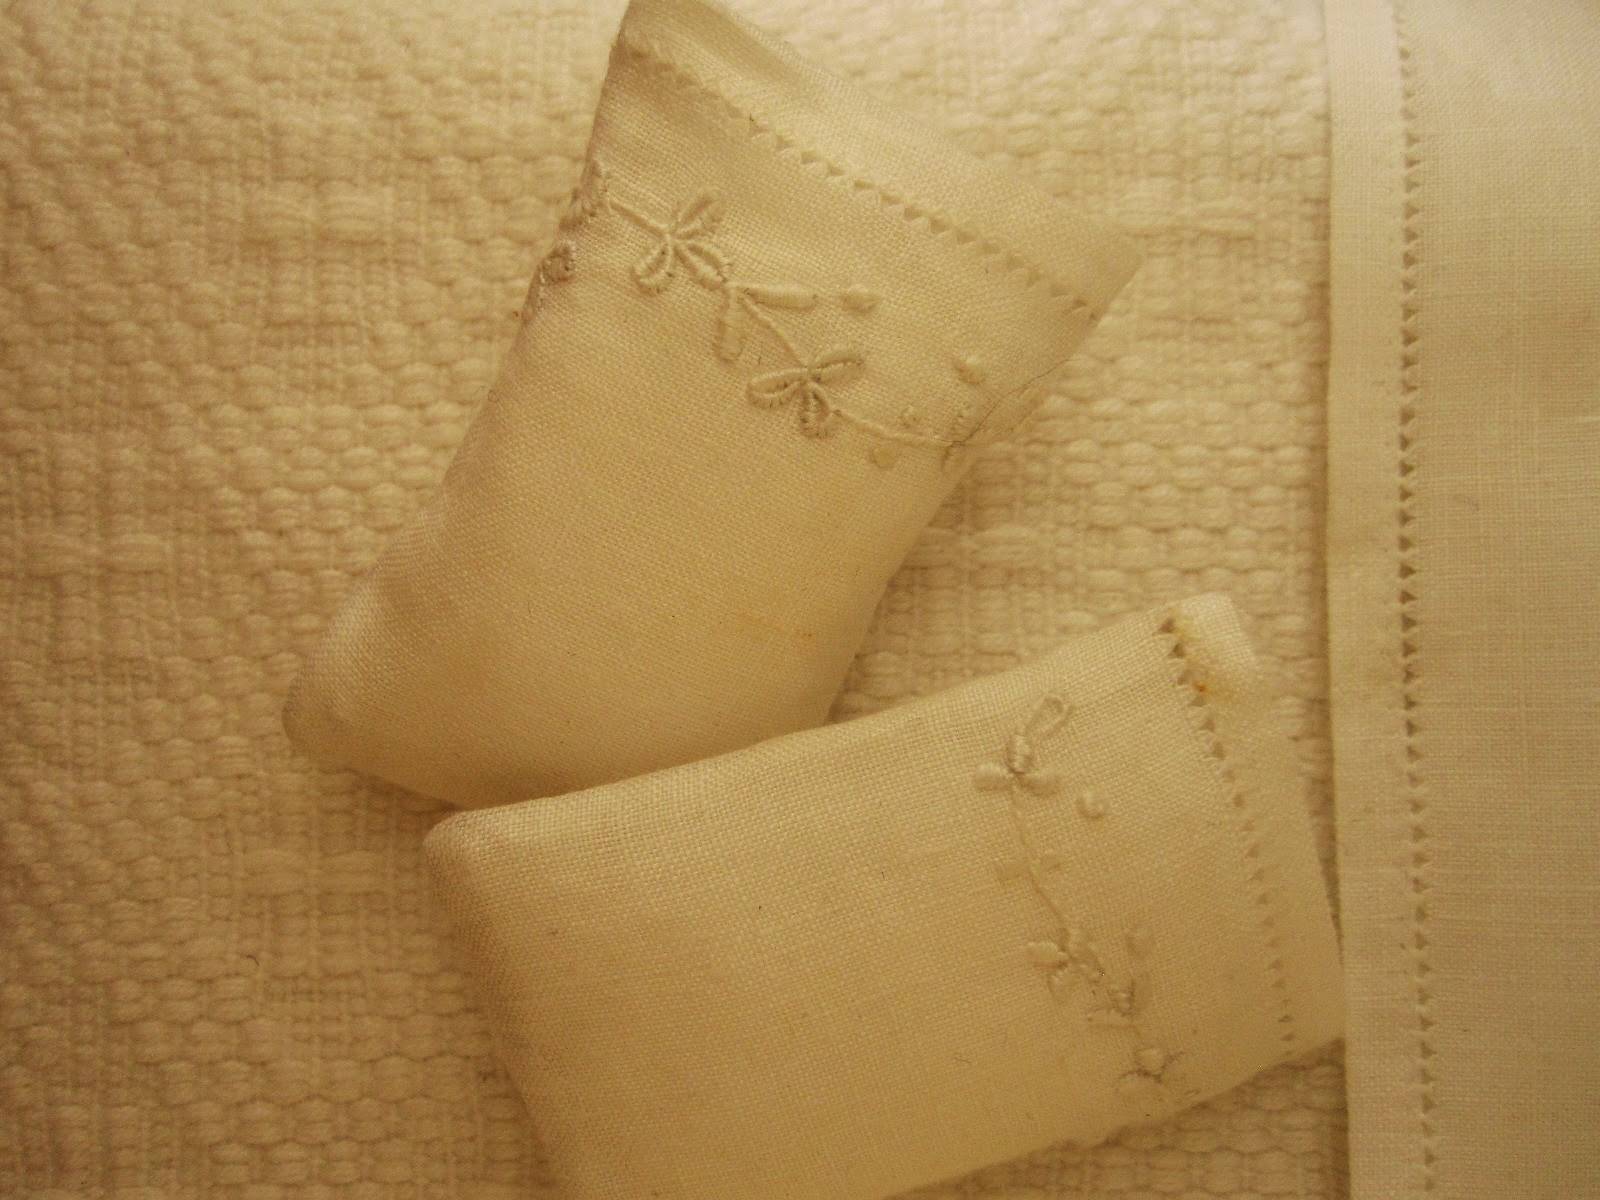 Two dolls' house miniature embroidered pillow cases on pillows, displayed on a white cotton bedspread.